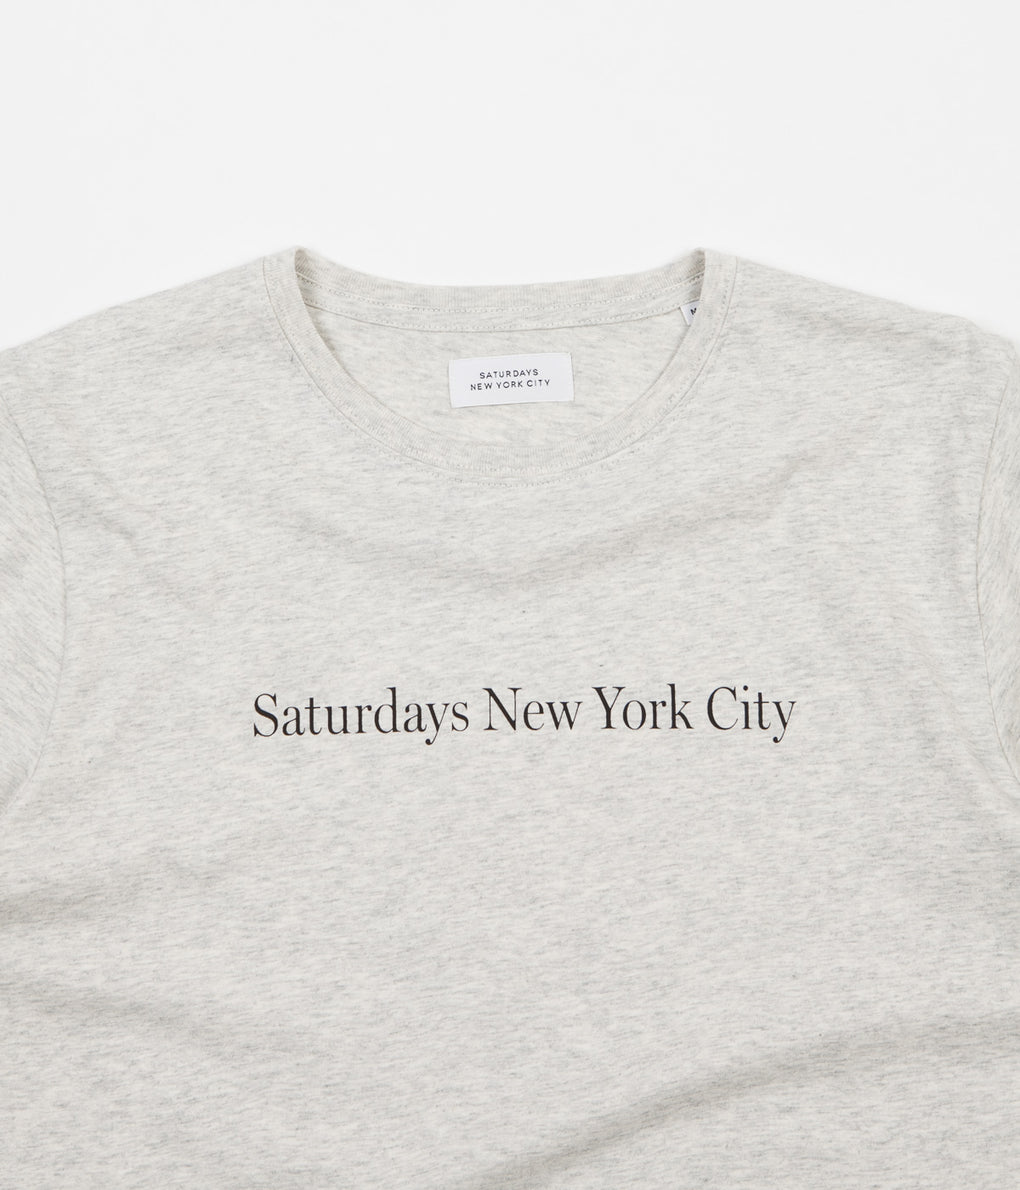 Saturdays NYC 'Saturdays NYC' T-Shirt - Natural Heather